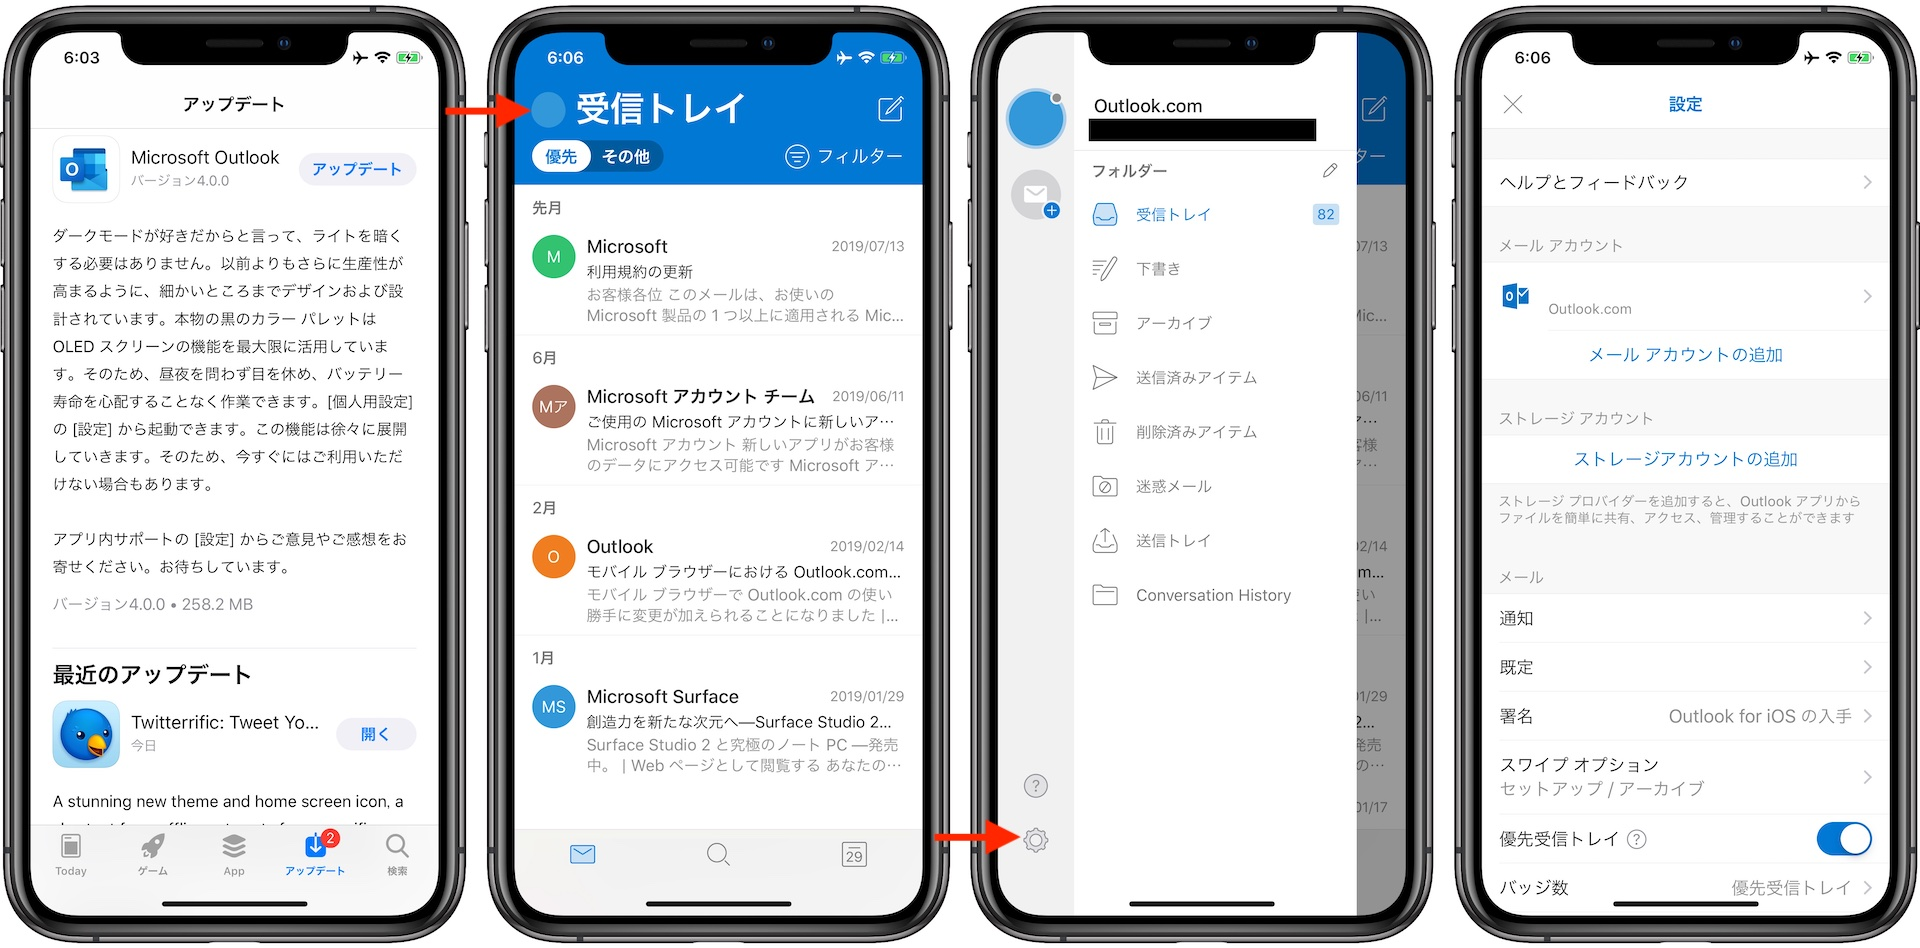 Outlook for iOS v4 Dark Mode